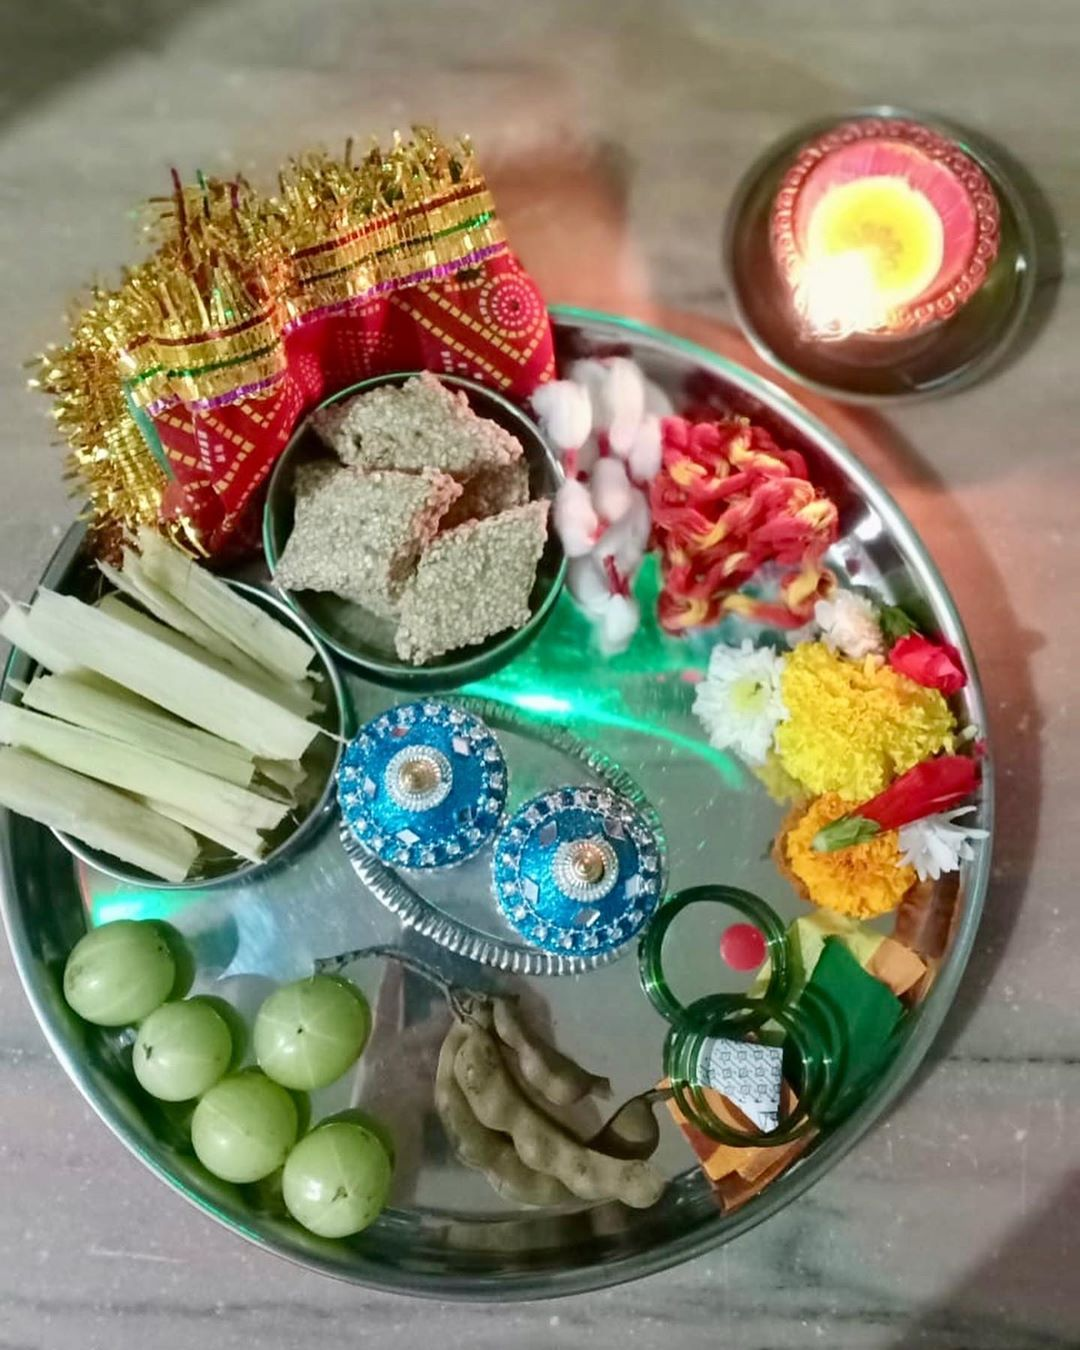 Tulsi puja  symbolizes Goddess Lakshmi, the consort of Lord Vishnu. The Tulsi leaf has great medicinal value as it cures various ailments, including the common cold.  The foods offered welcomes new seasonal food like sugarcane, amla, sesame seeds all these has their own significance in our health. #diwali #tusipuja #tulsi